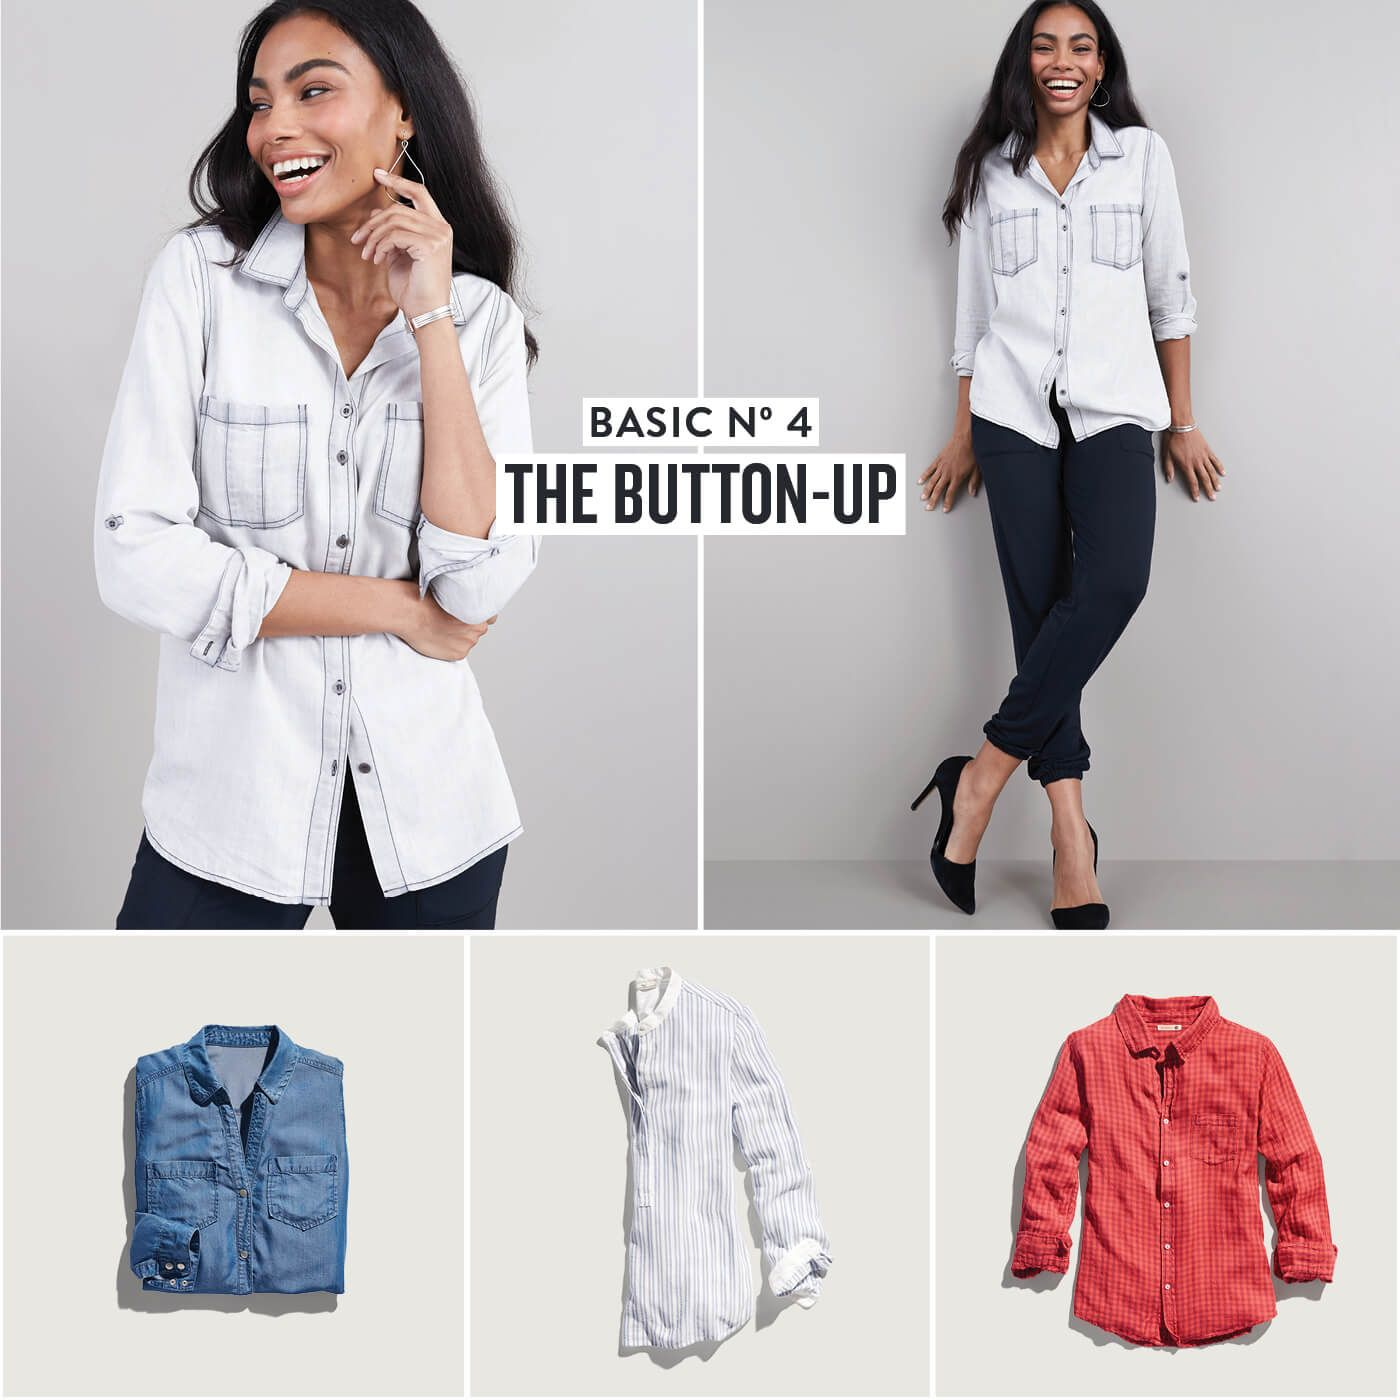 Fall In Love With Basics | Stitch Fix Style